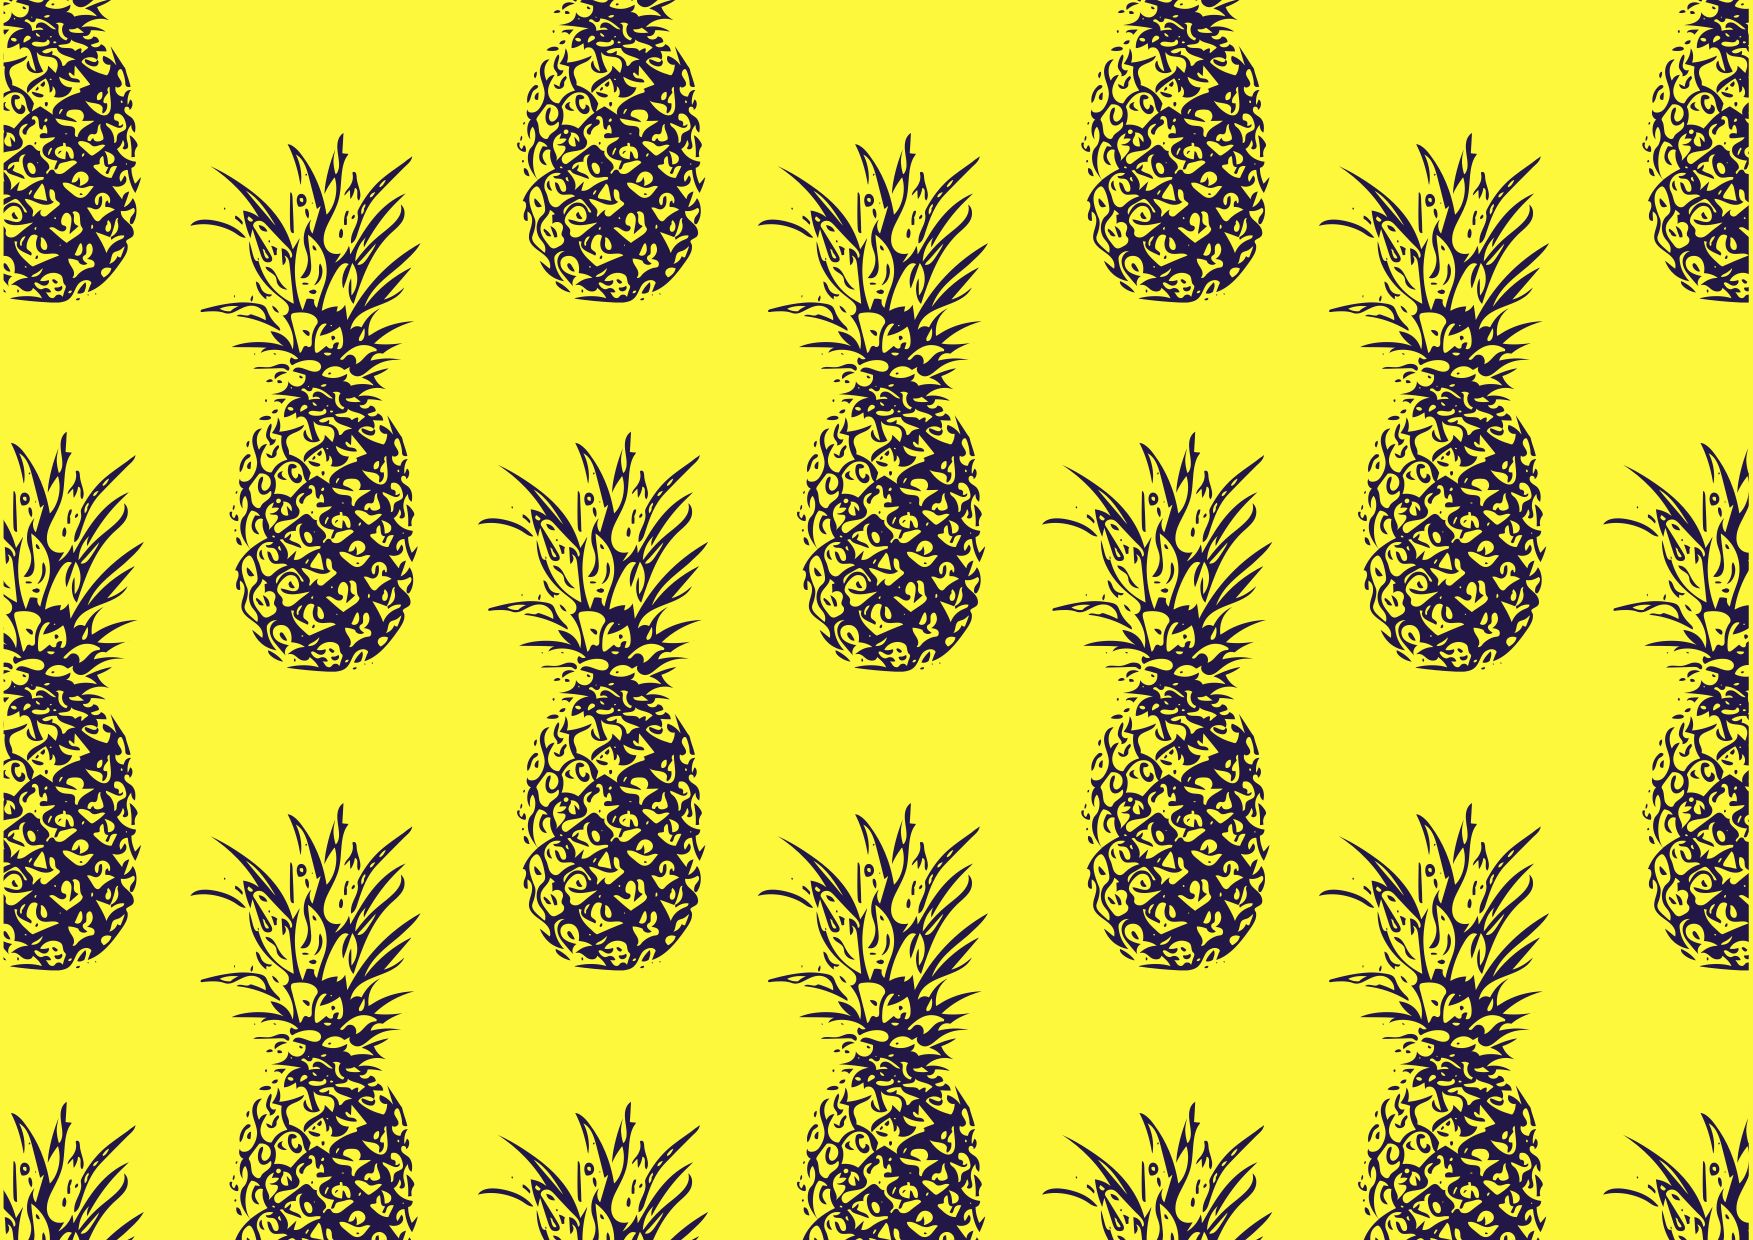 DRESS UP YOUR TECH Aesthetic wallpapers, Pineapple